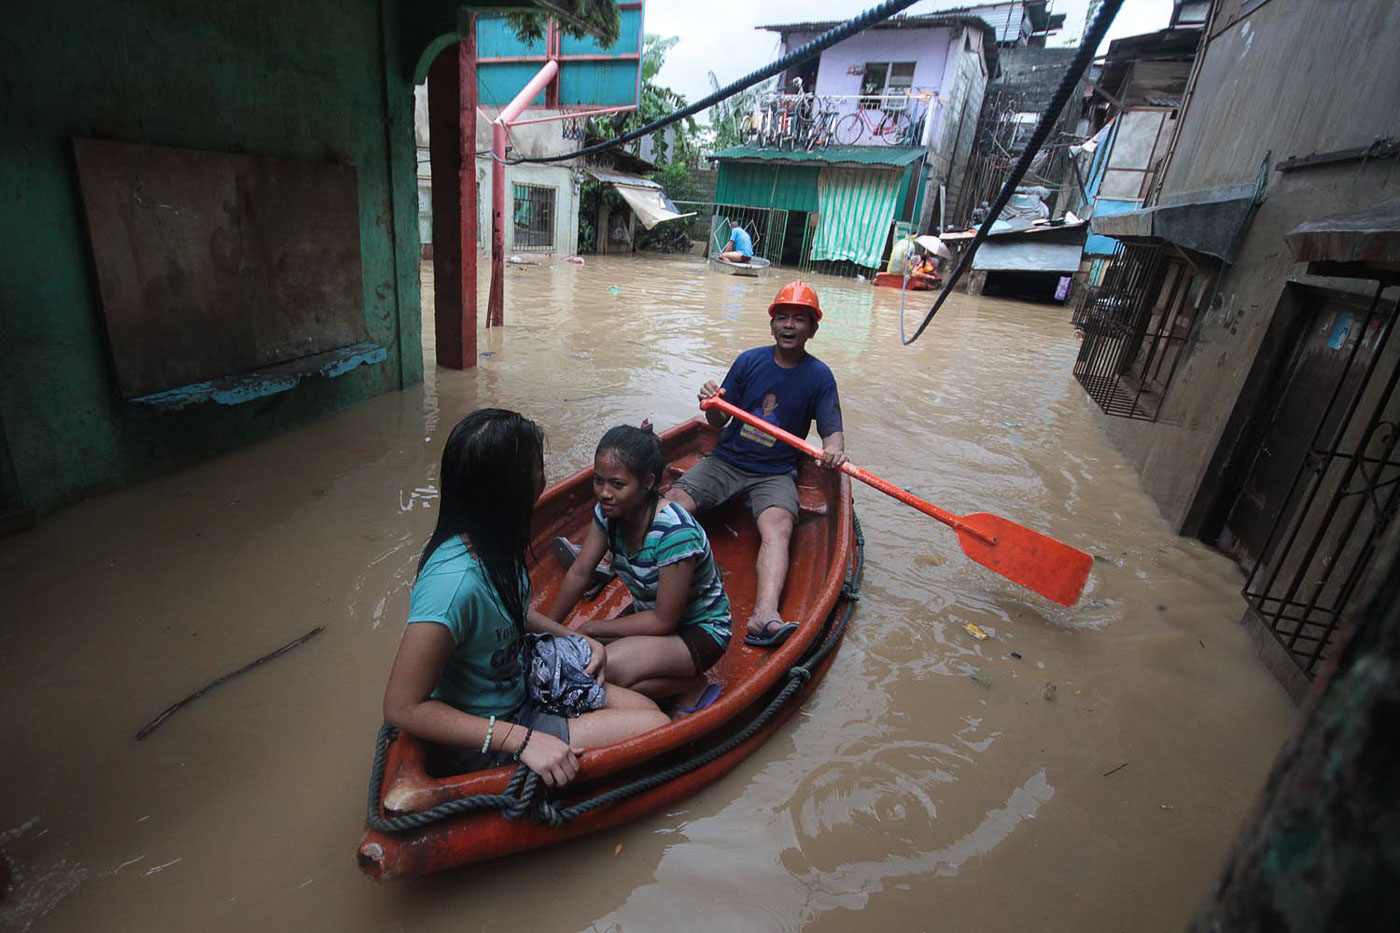 IN RIZAL. Residents of Barangay Banaba in San Mateo on a boat in waist-deep flood as they evacuate from their houses. Photo by Darren Langit/Rappler